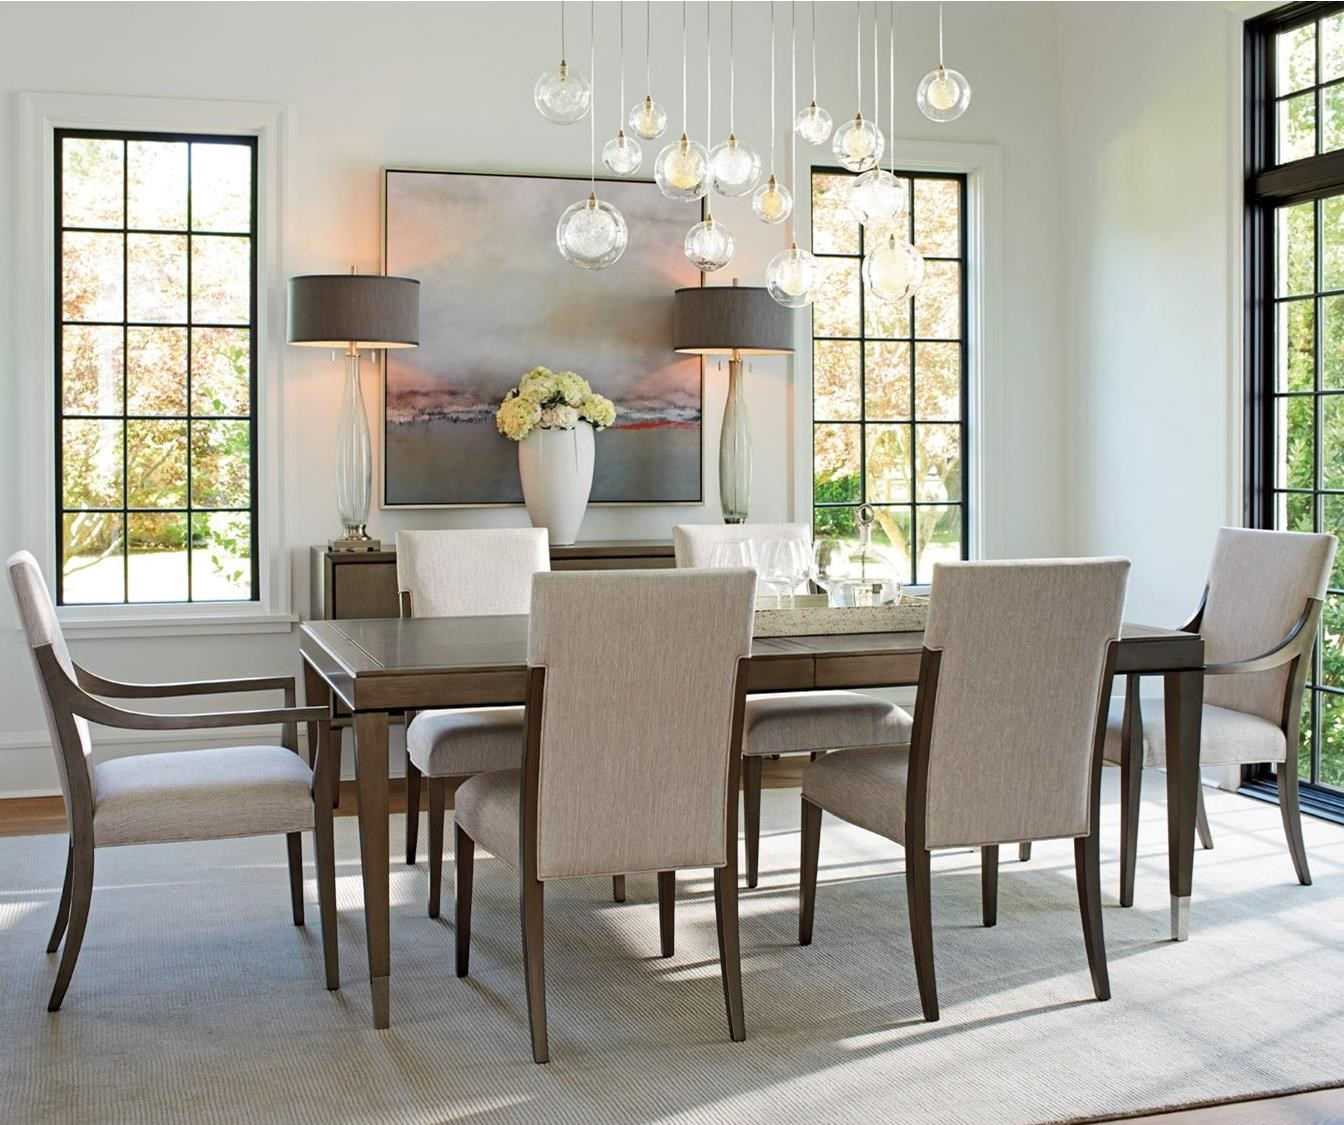 Ariana 7 Pc Dining Set by Lexington at Baer's Furniture